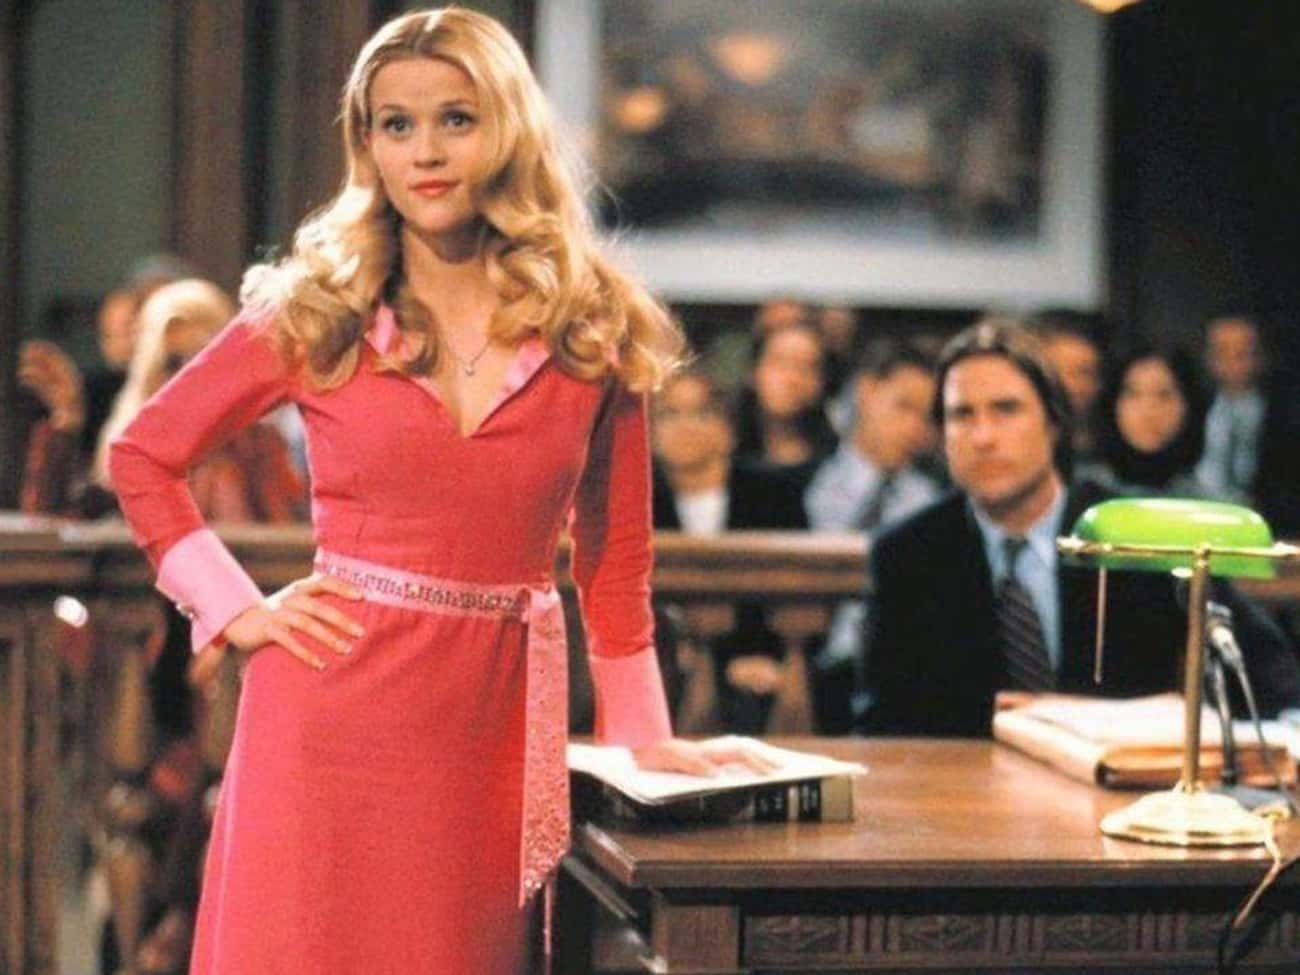 Elle Woods In 'Legally Blonde' is listed (or ranked) 3 on the list 13 Times Movie Characters Summed Up Their Story With A Climactic Essay Or School Presentation